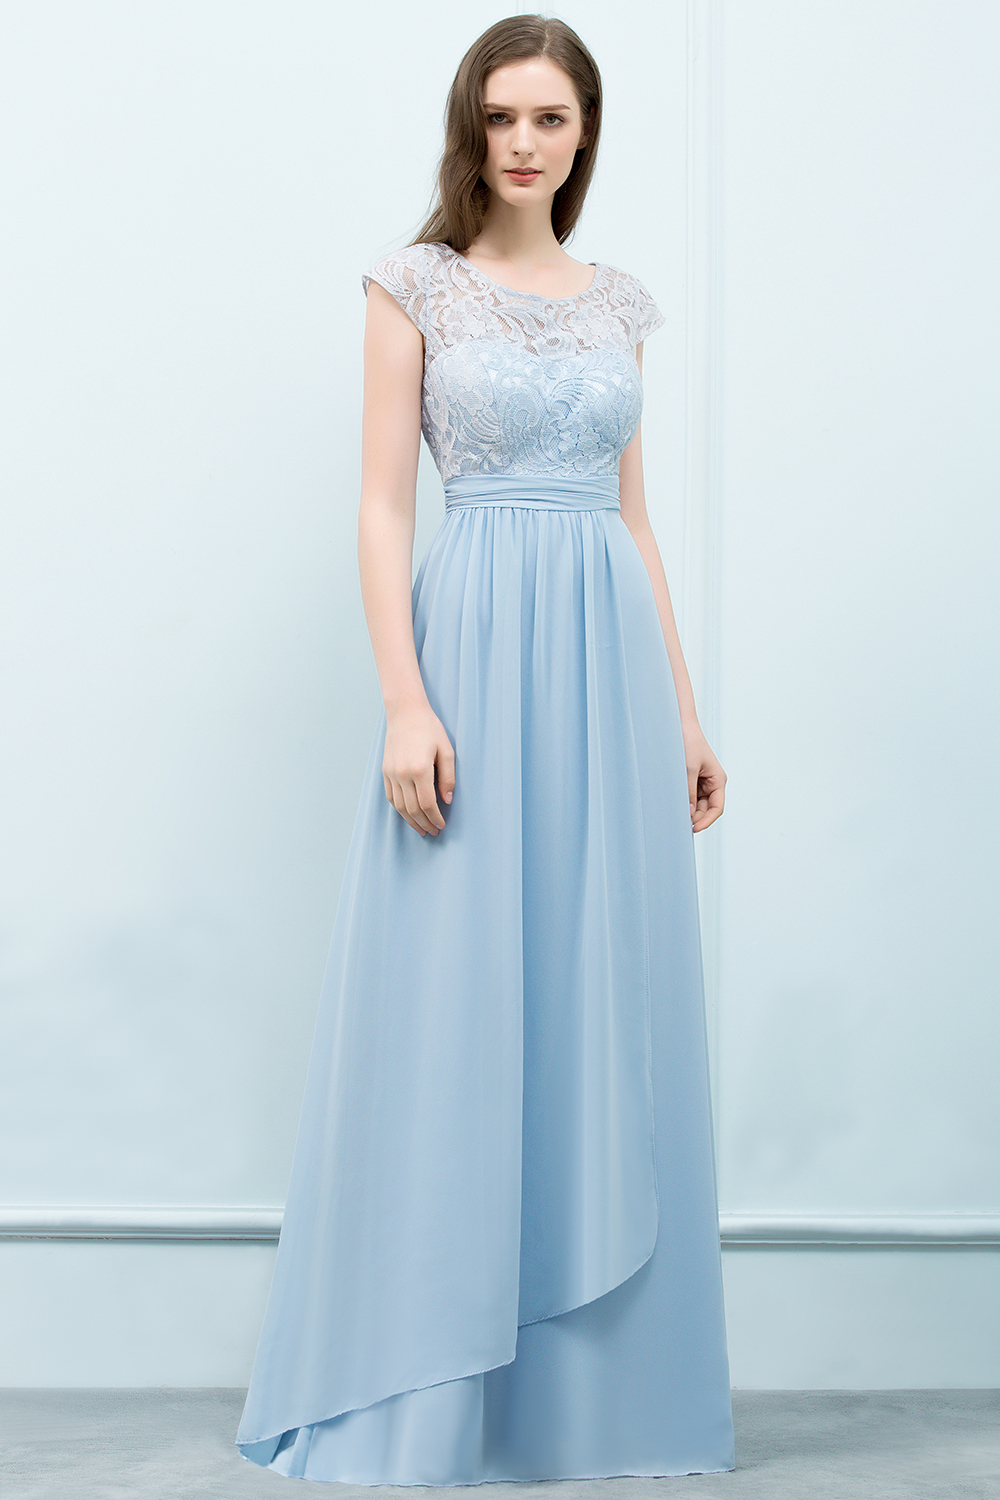 BMbridal Affordable Lace Sleeveless Blue Bridesmaid Dresses With Scoop Cap